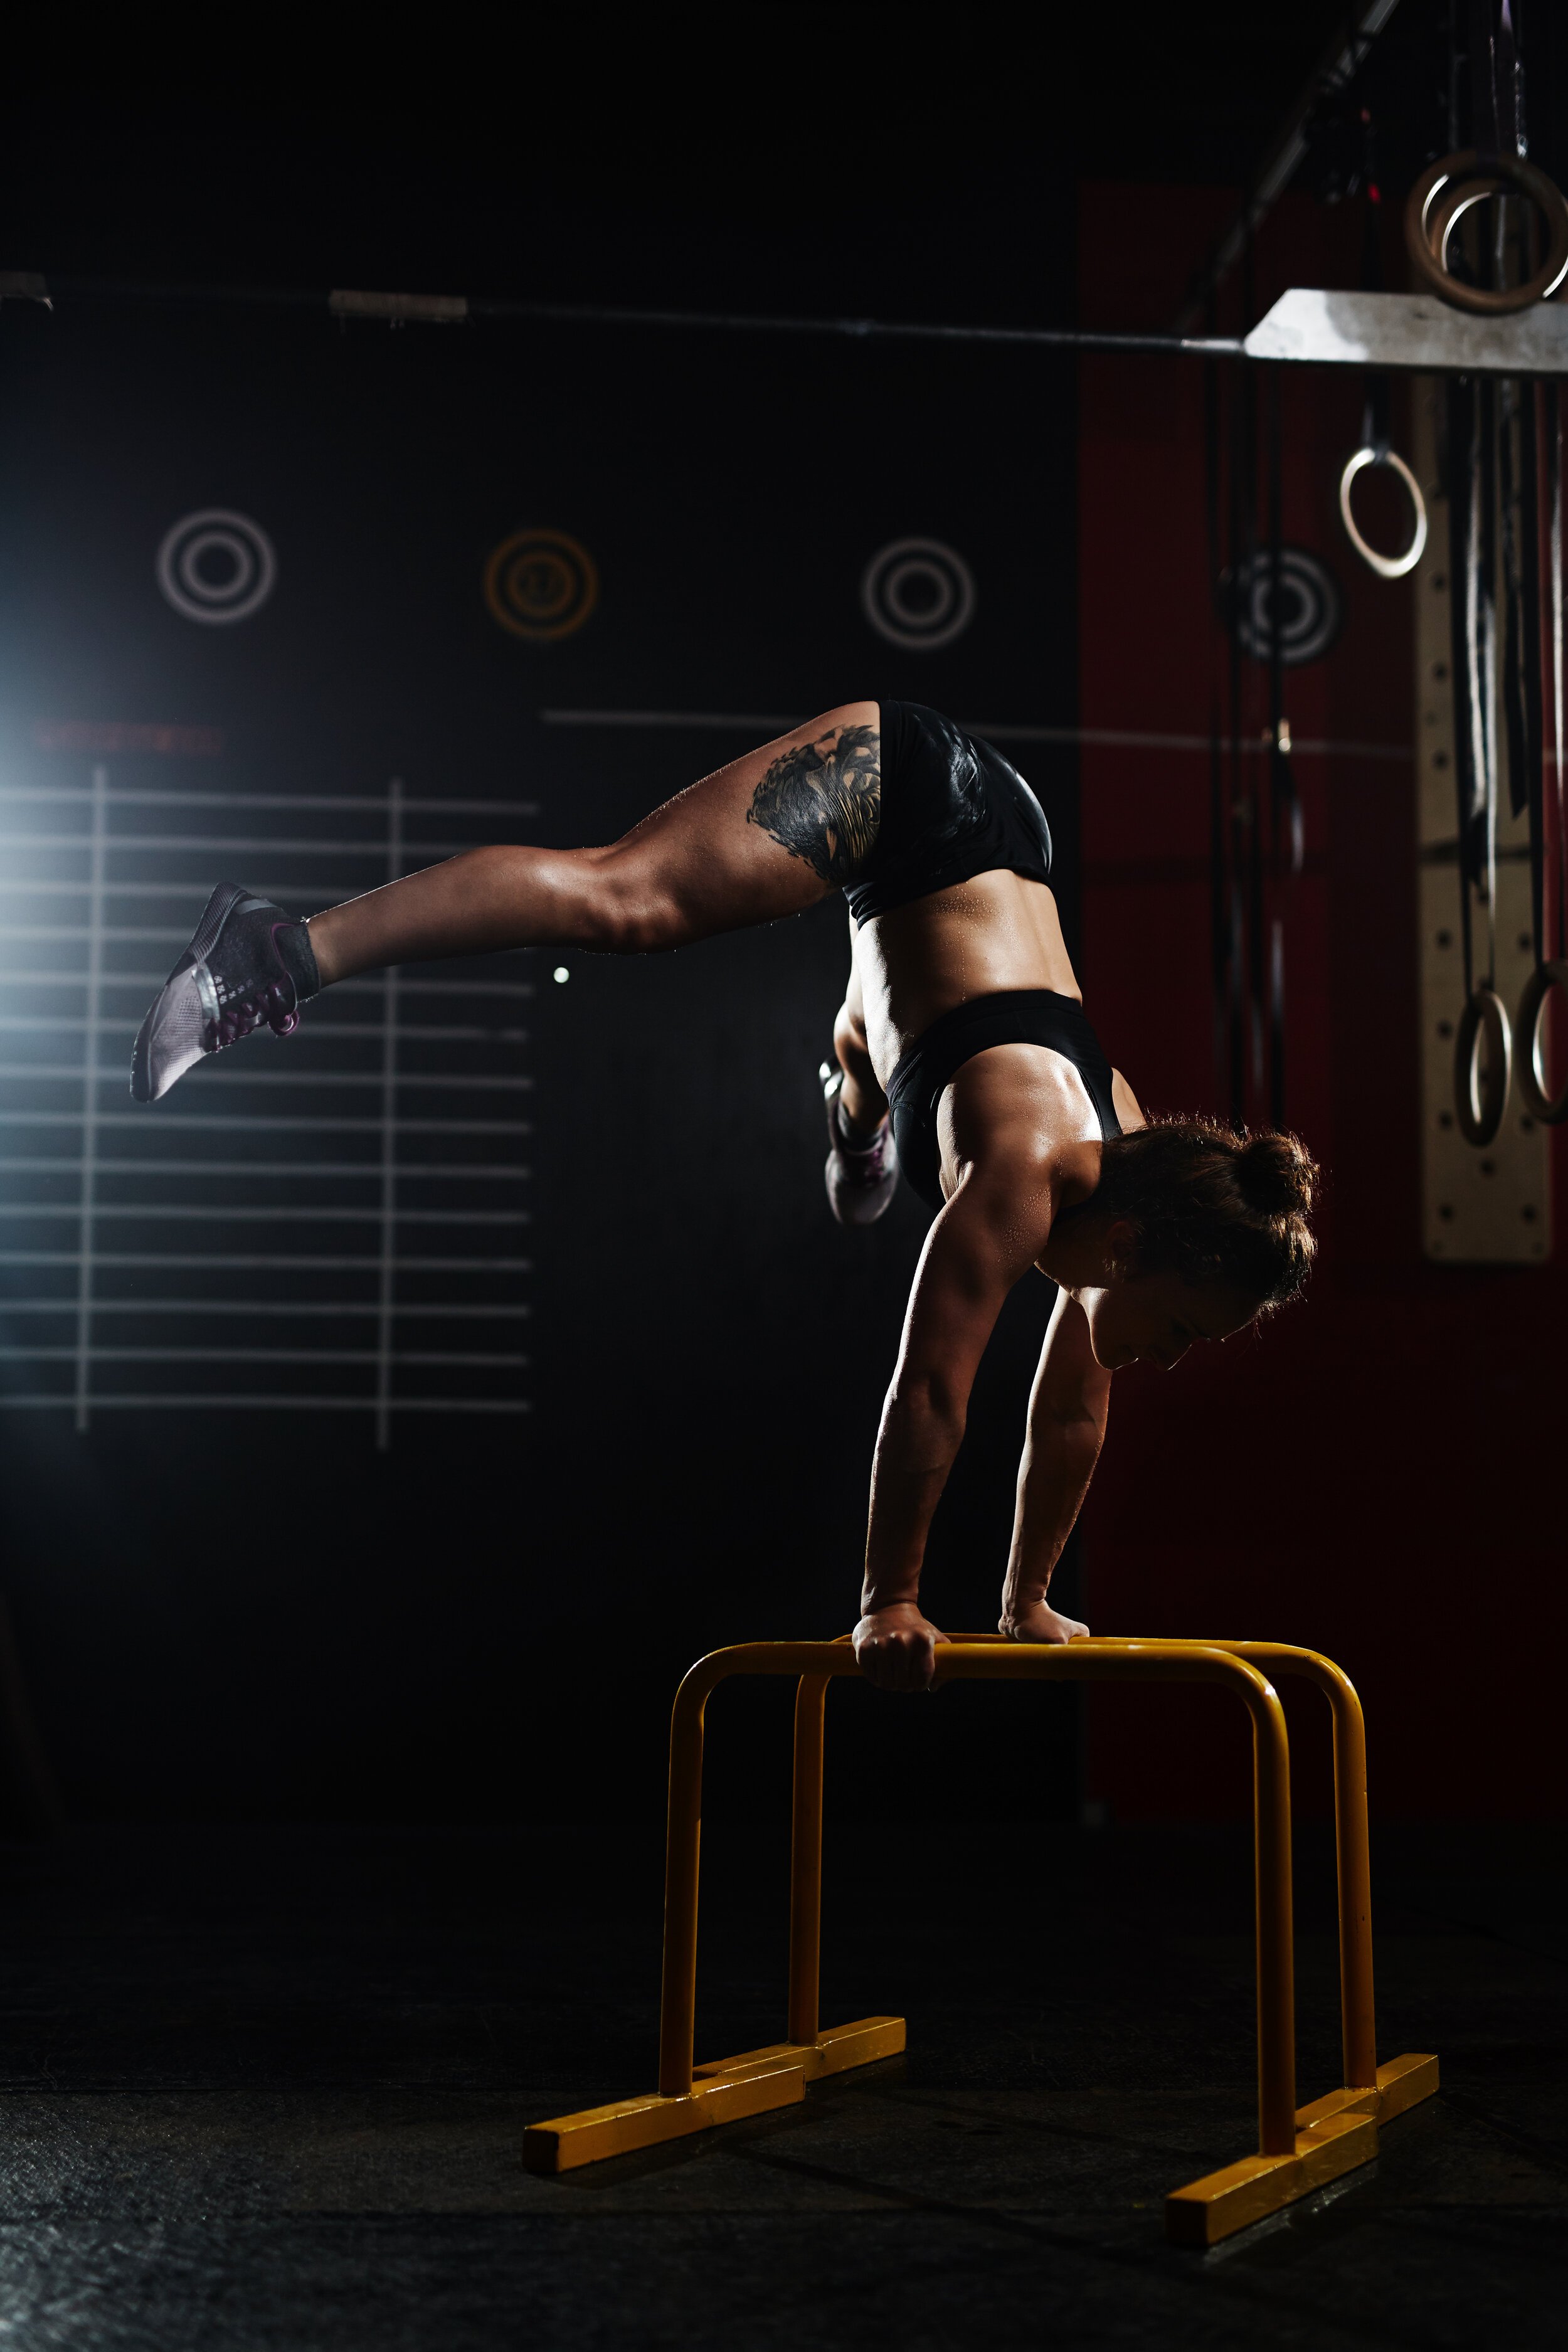 handstand-on-the-rails-PGJHJ86.jpg